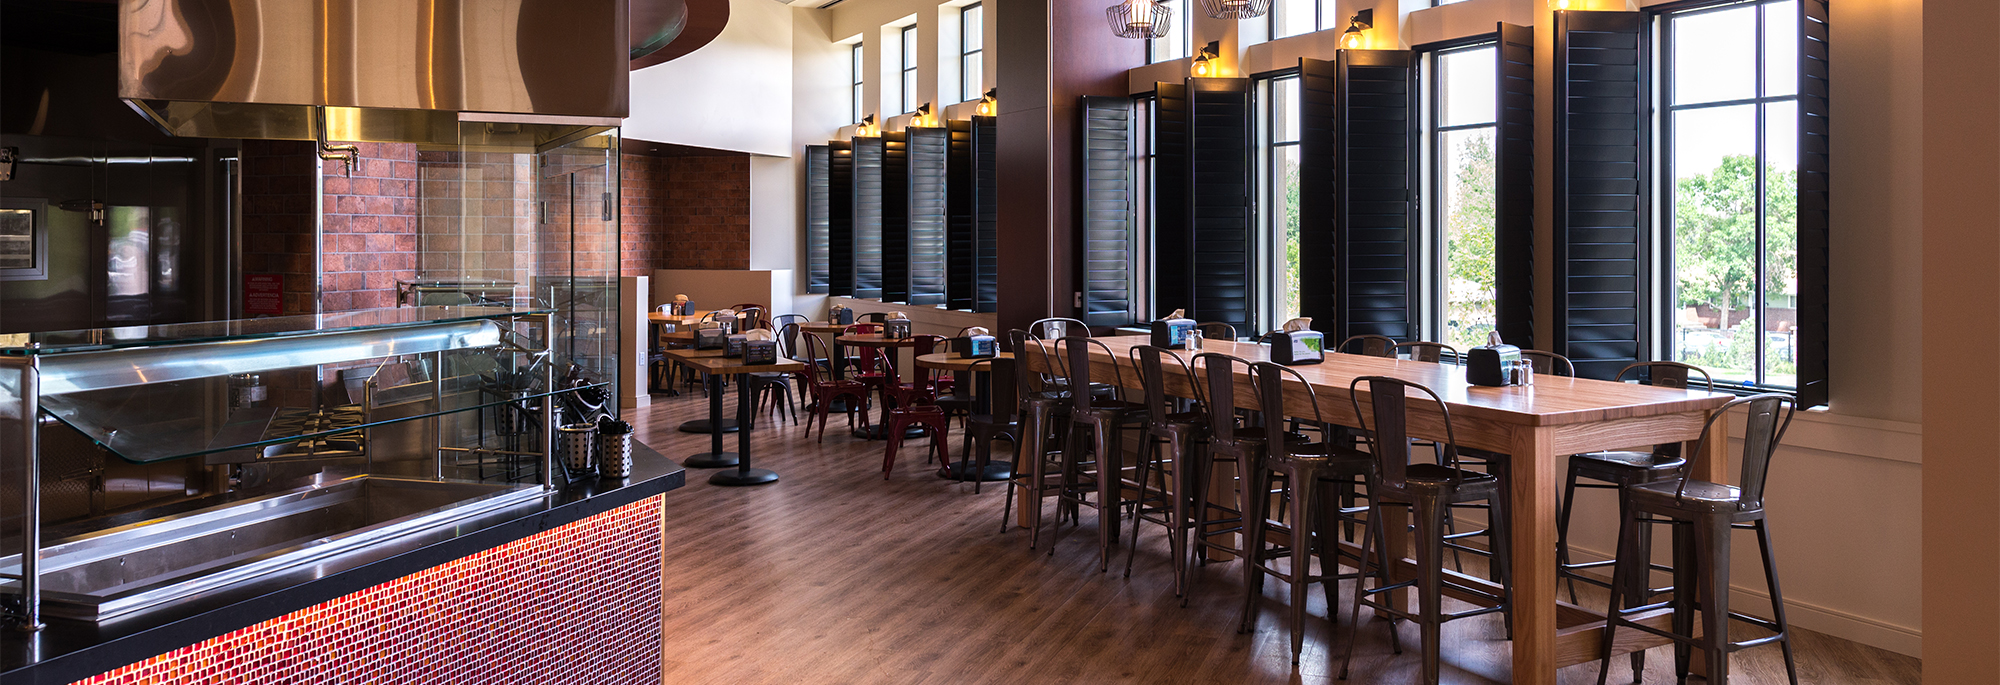 Dining And Meal Plans Colorado Christian University